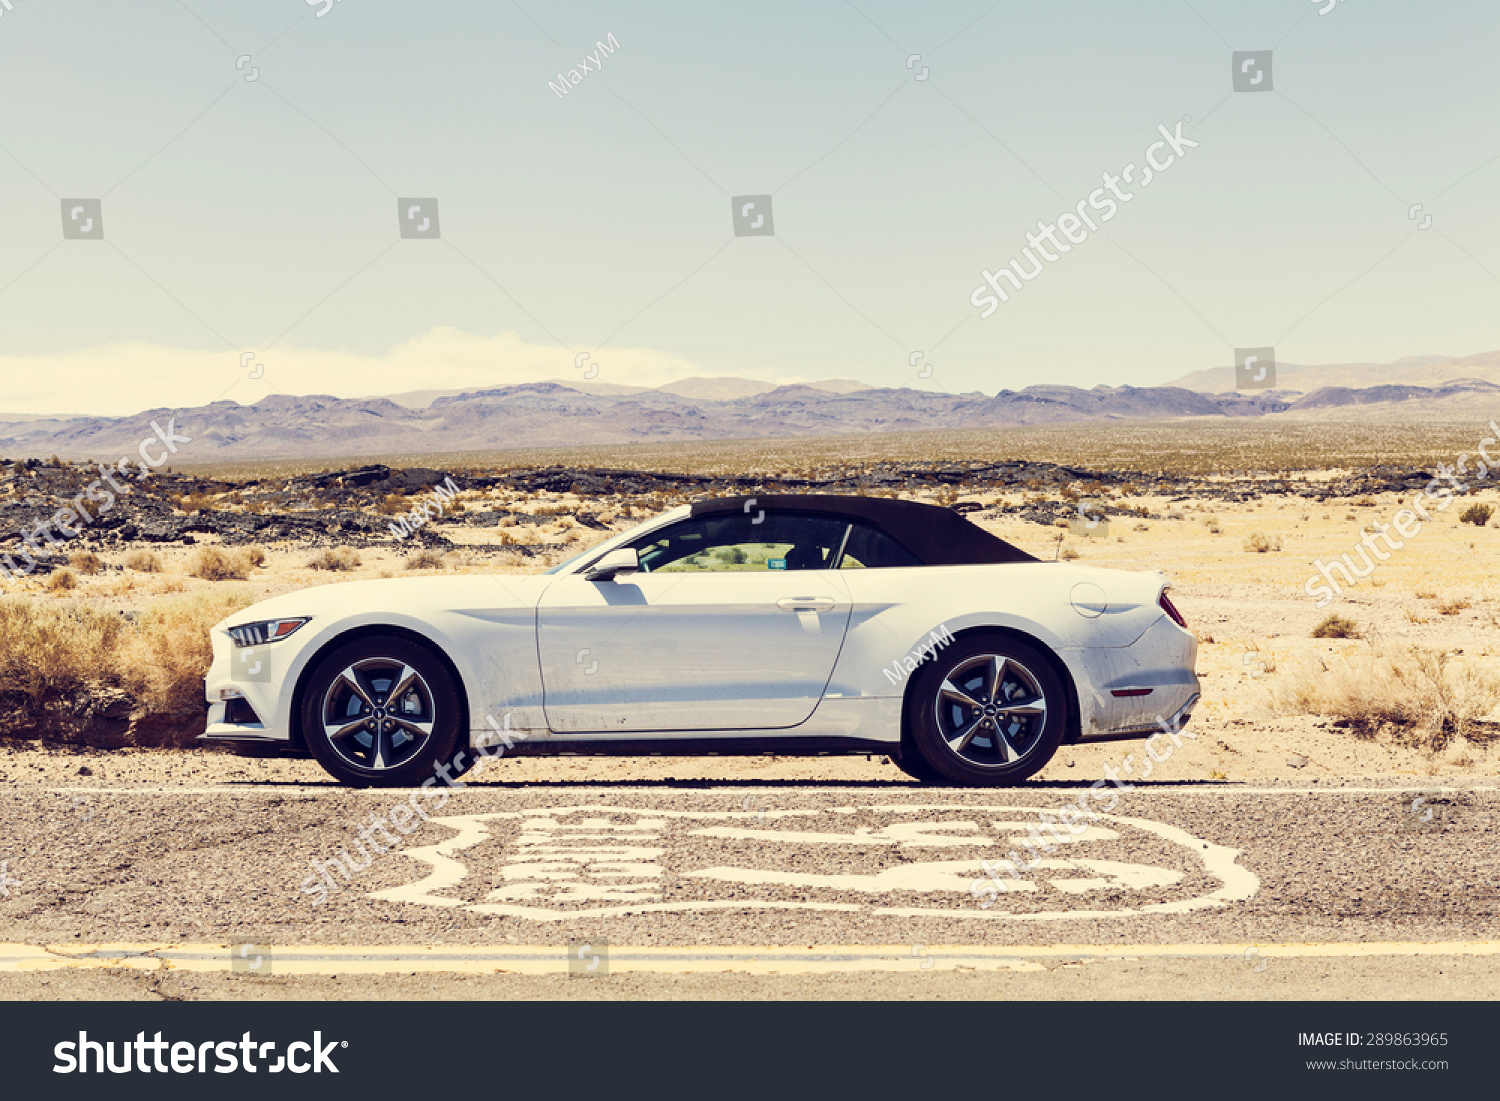 CALIFORNIA USA JUNE 19 2015 Photo of a sixth generation Ford Mustang 2015 at Route 66 California USA